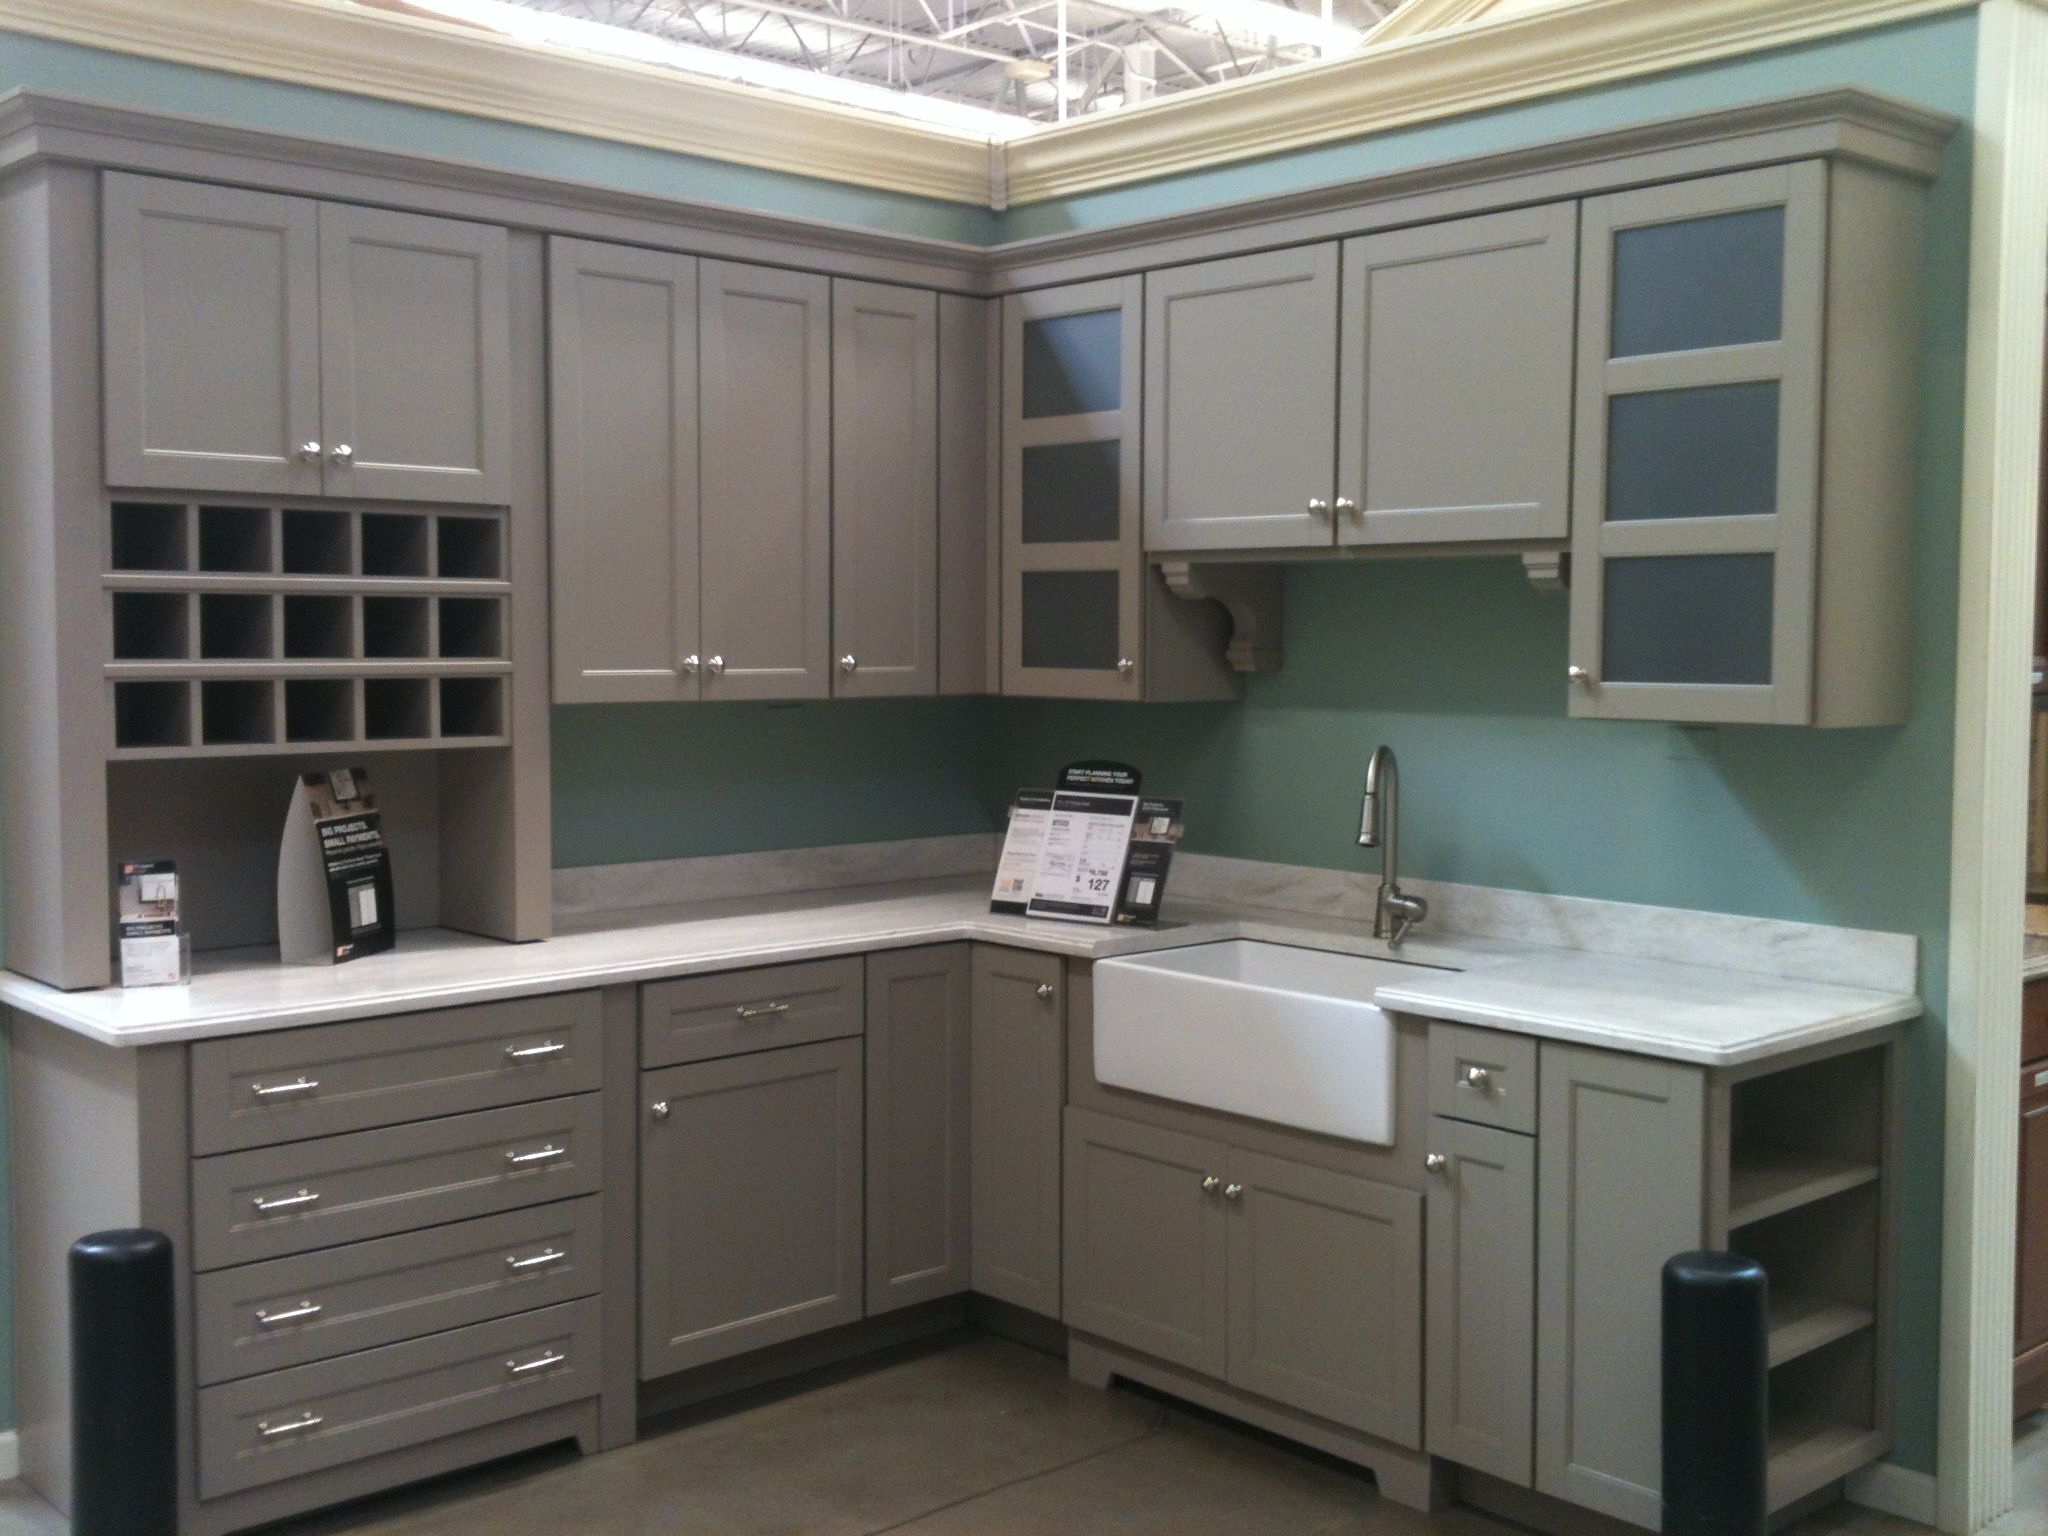 Kitchen Cabinets Home Depot Prices Martha Stewart Cabinets From Home Depot Like The Shelves